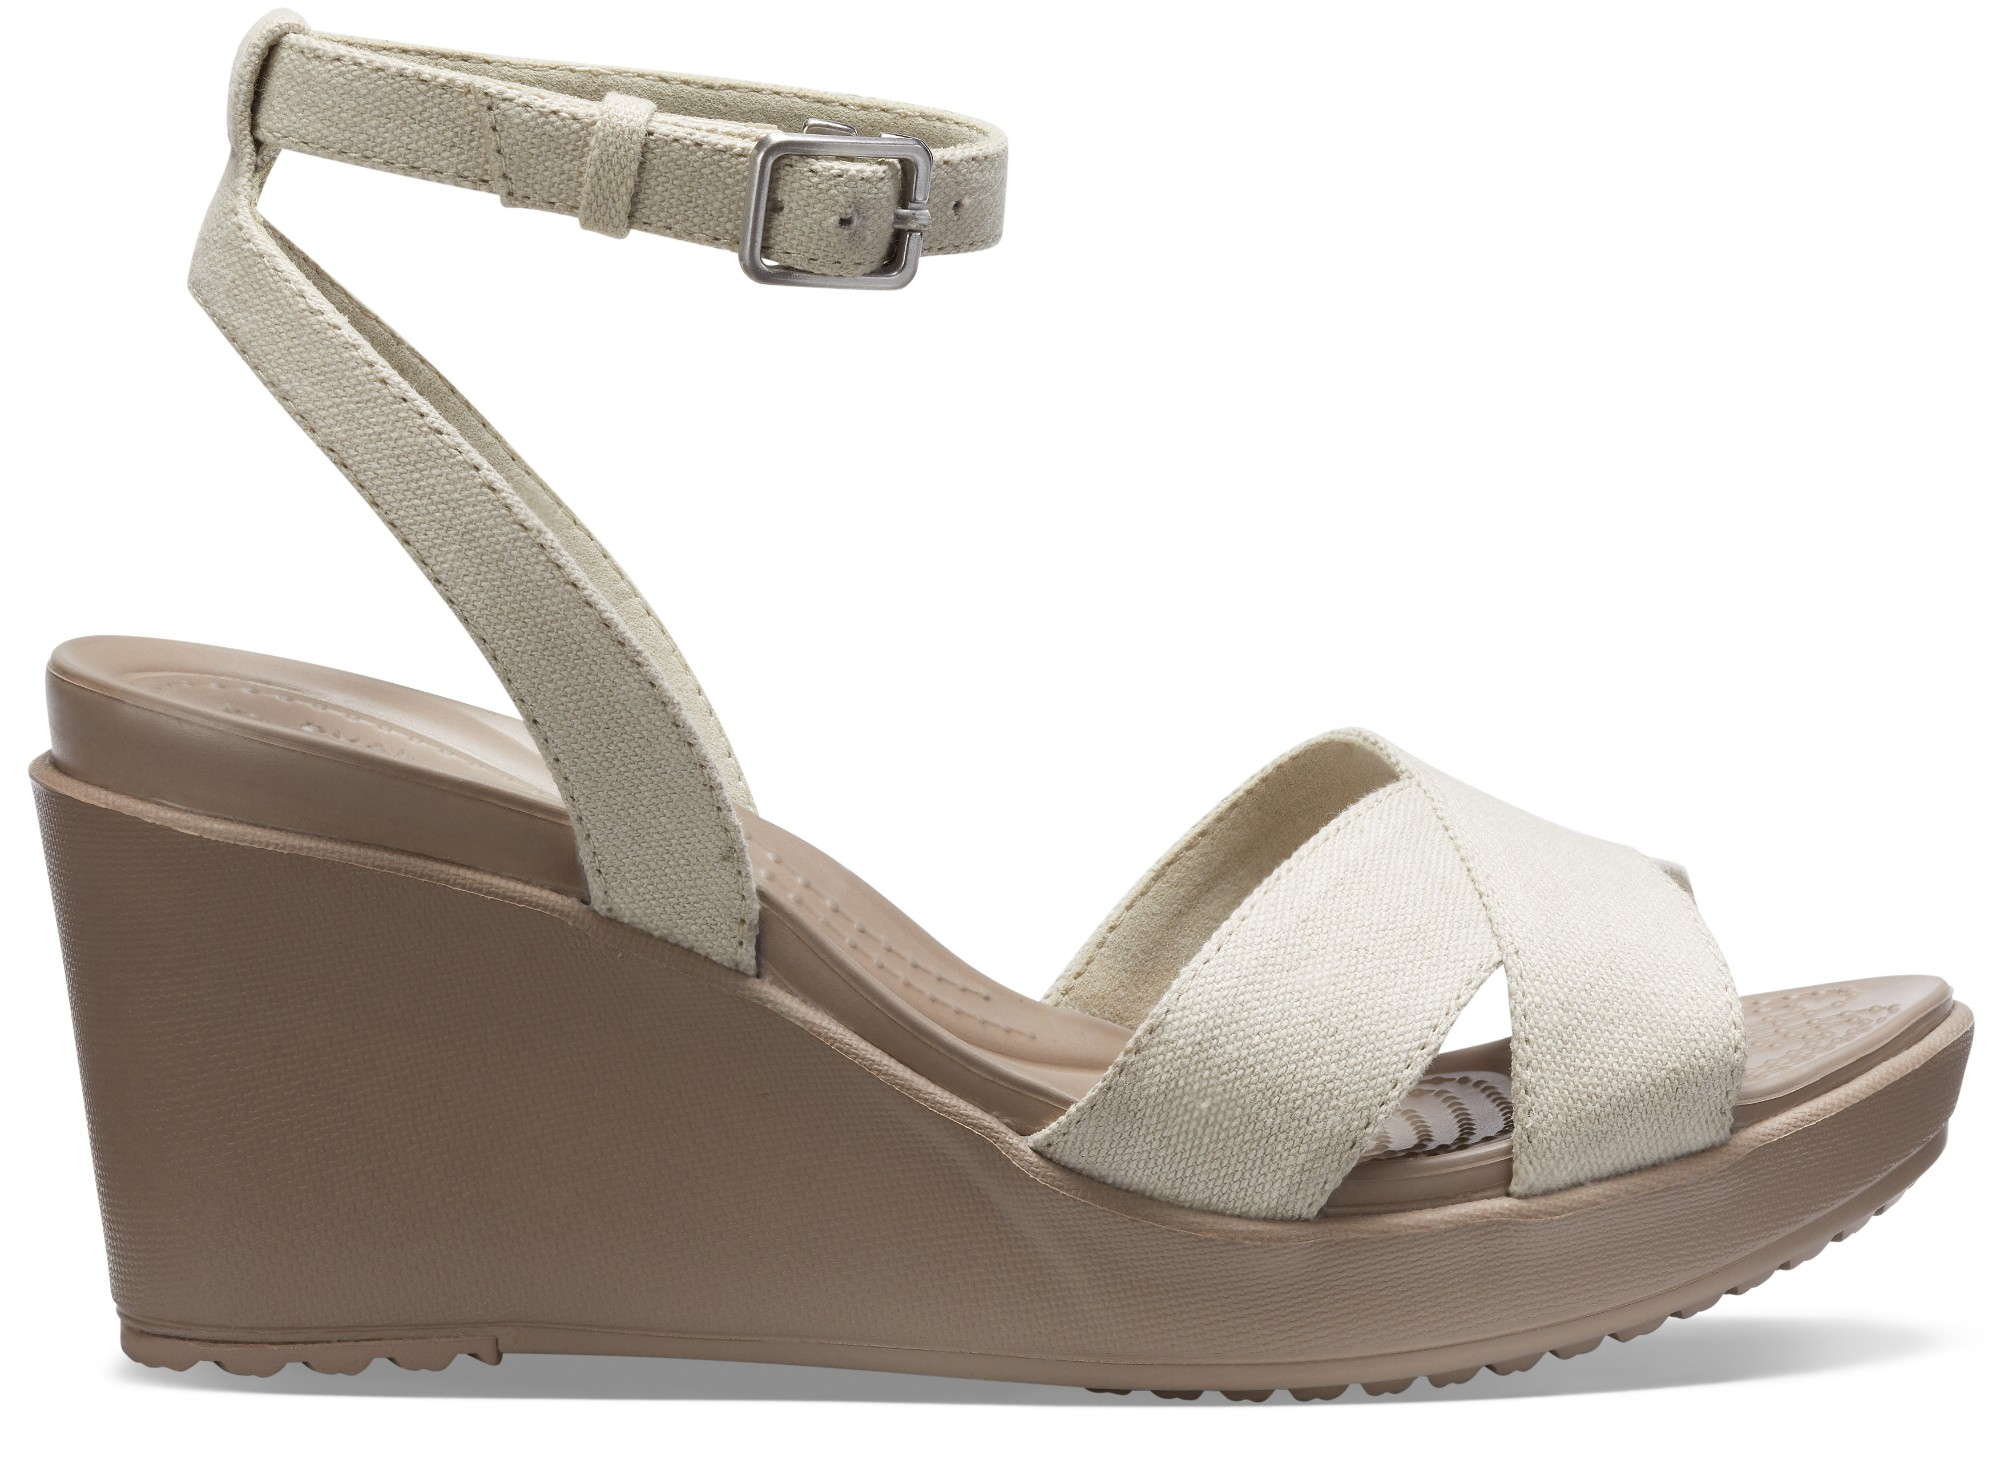 Crocs™ Women's Leigh II Ankle Strap Wedge Oatmeal/Mushroom 39,5